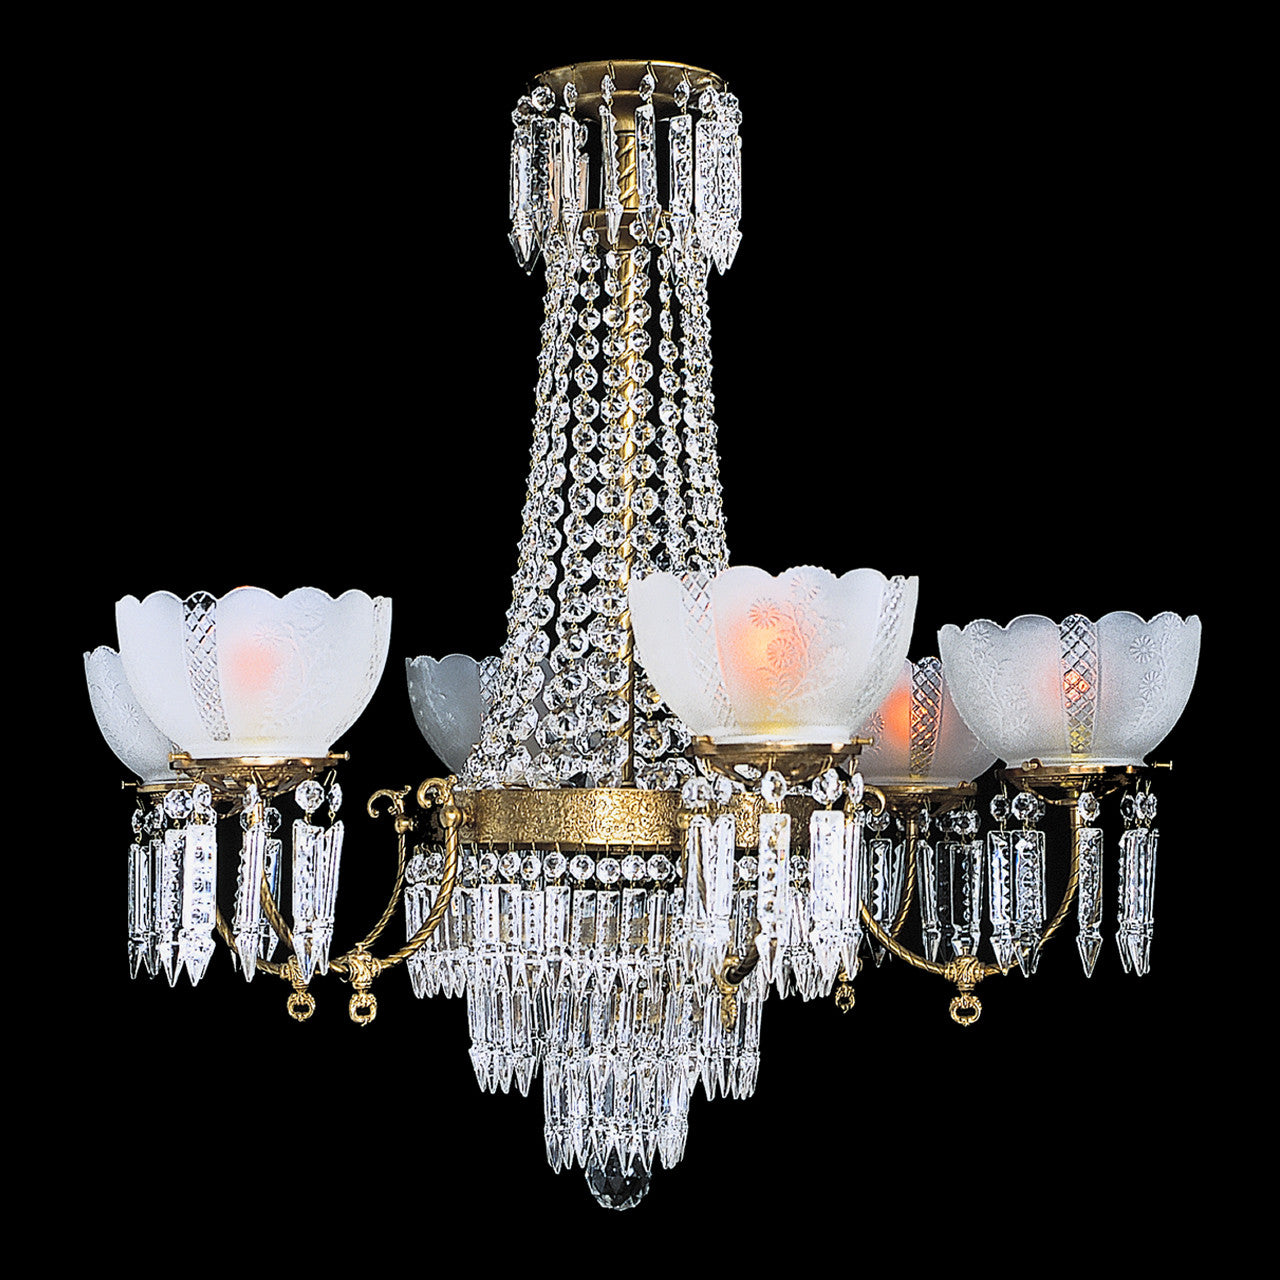 Charleston 6 6 light brass and crystal victorian chandelier 36 6 light victorian chandelier charleston 6 mozeypictures Image collections